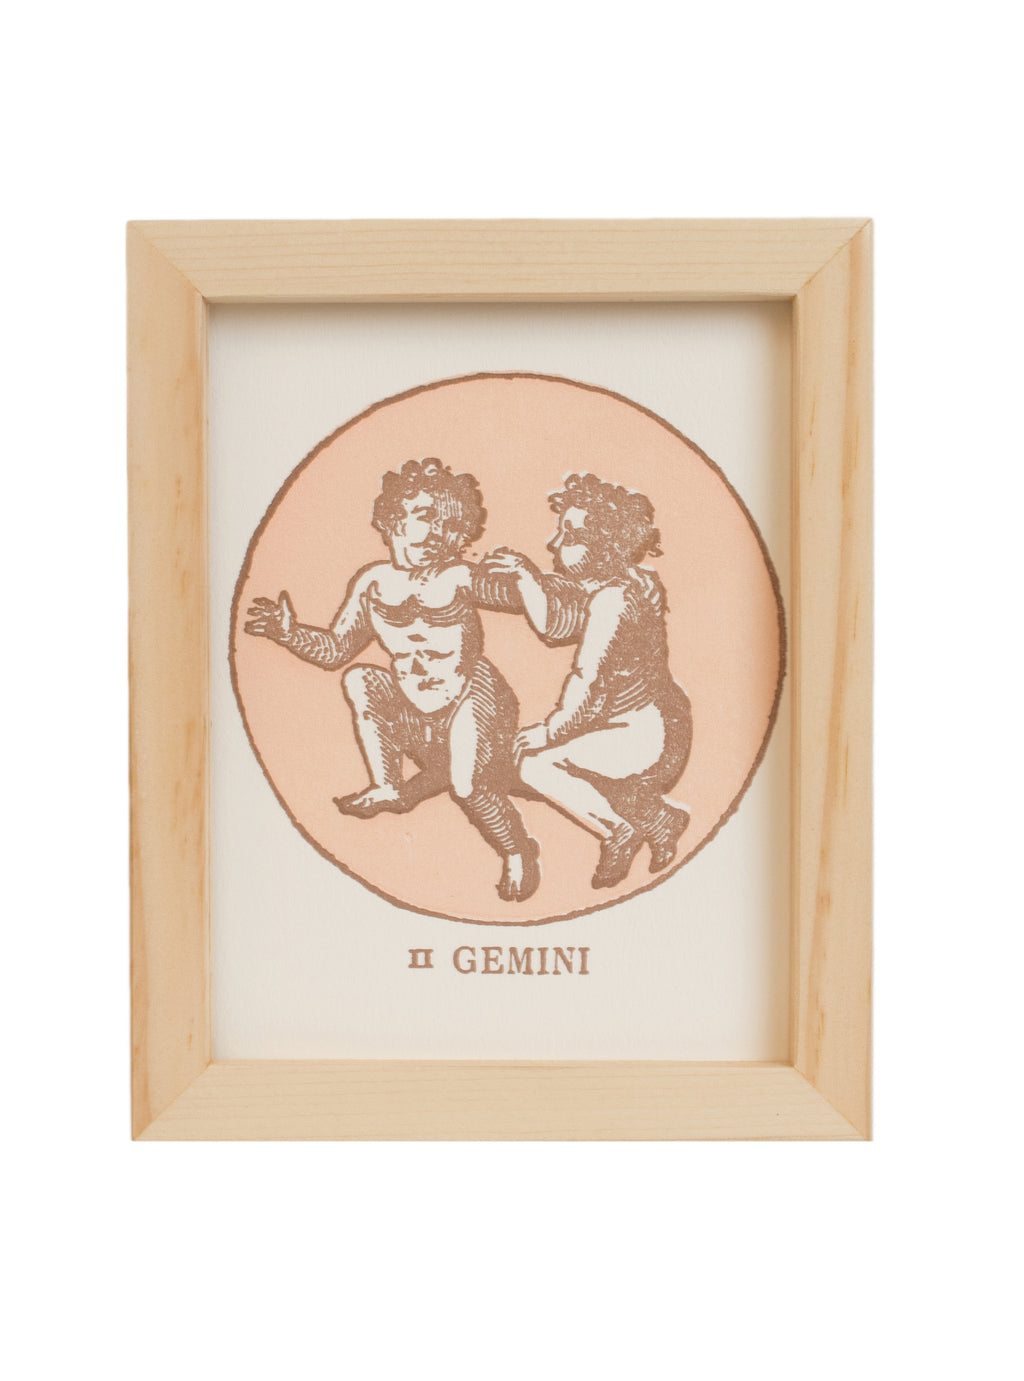 Gemini (May 21 - June 20)